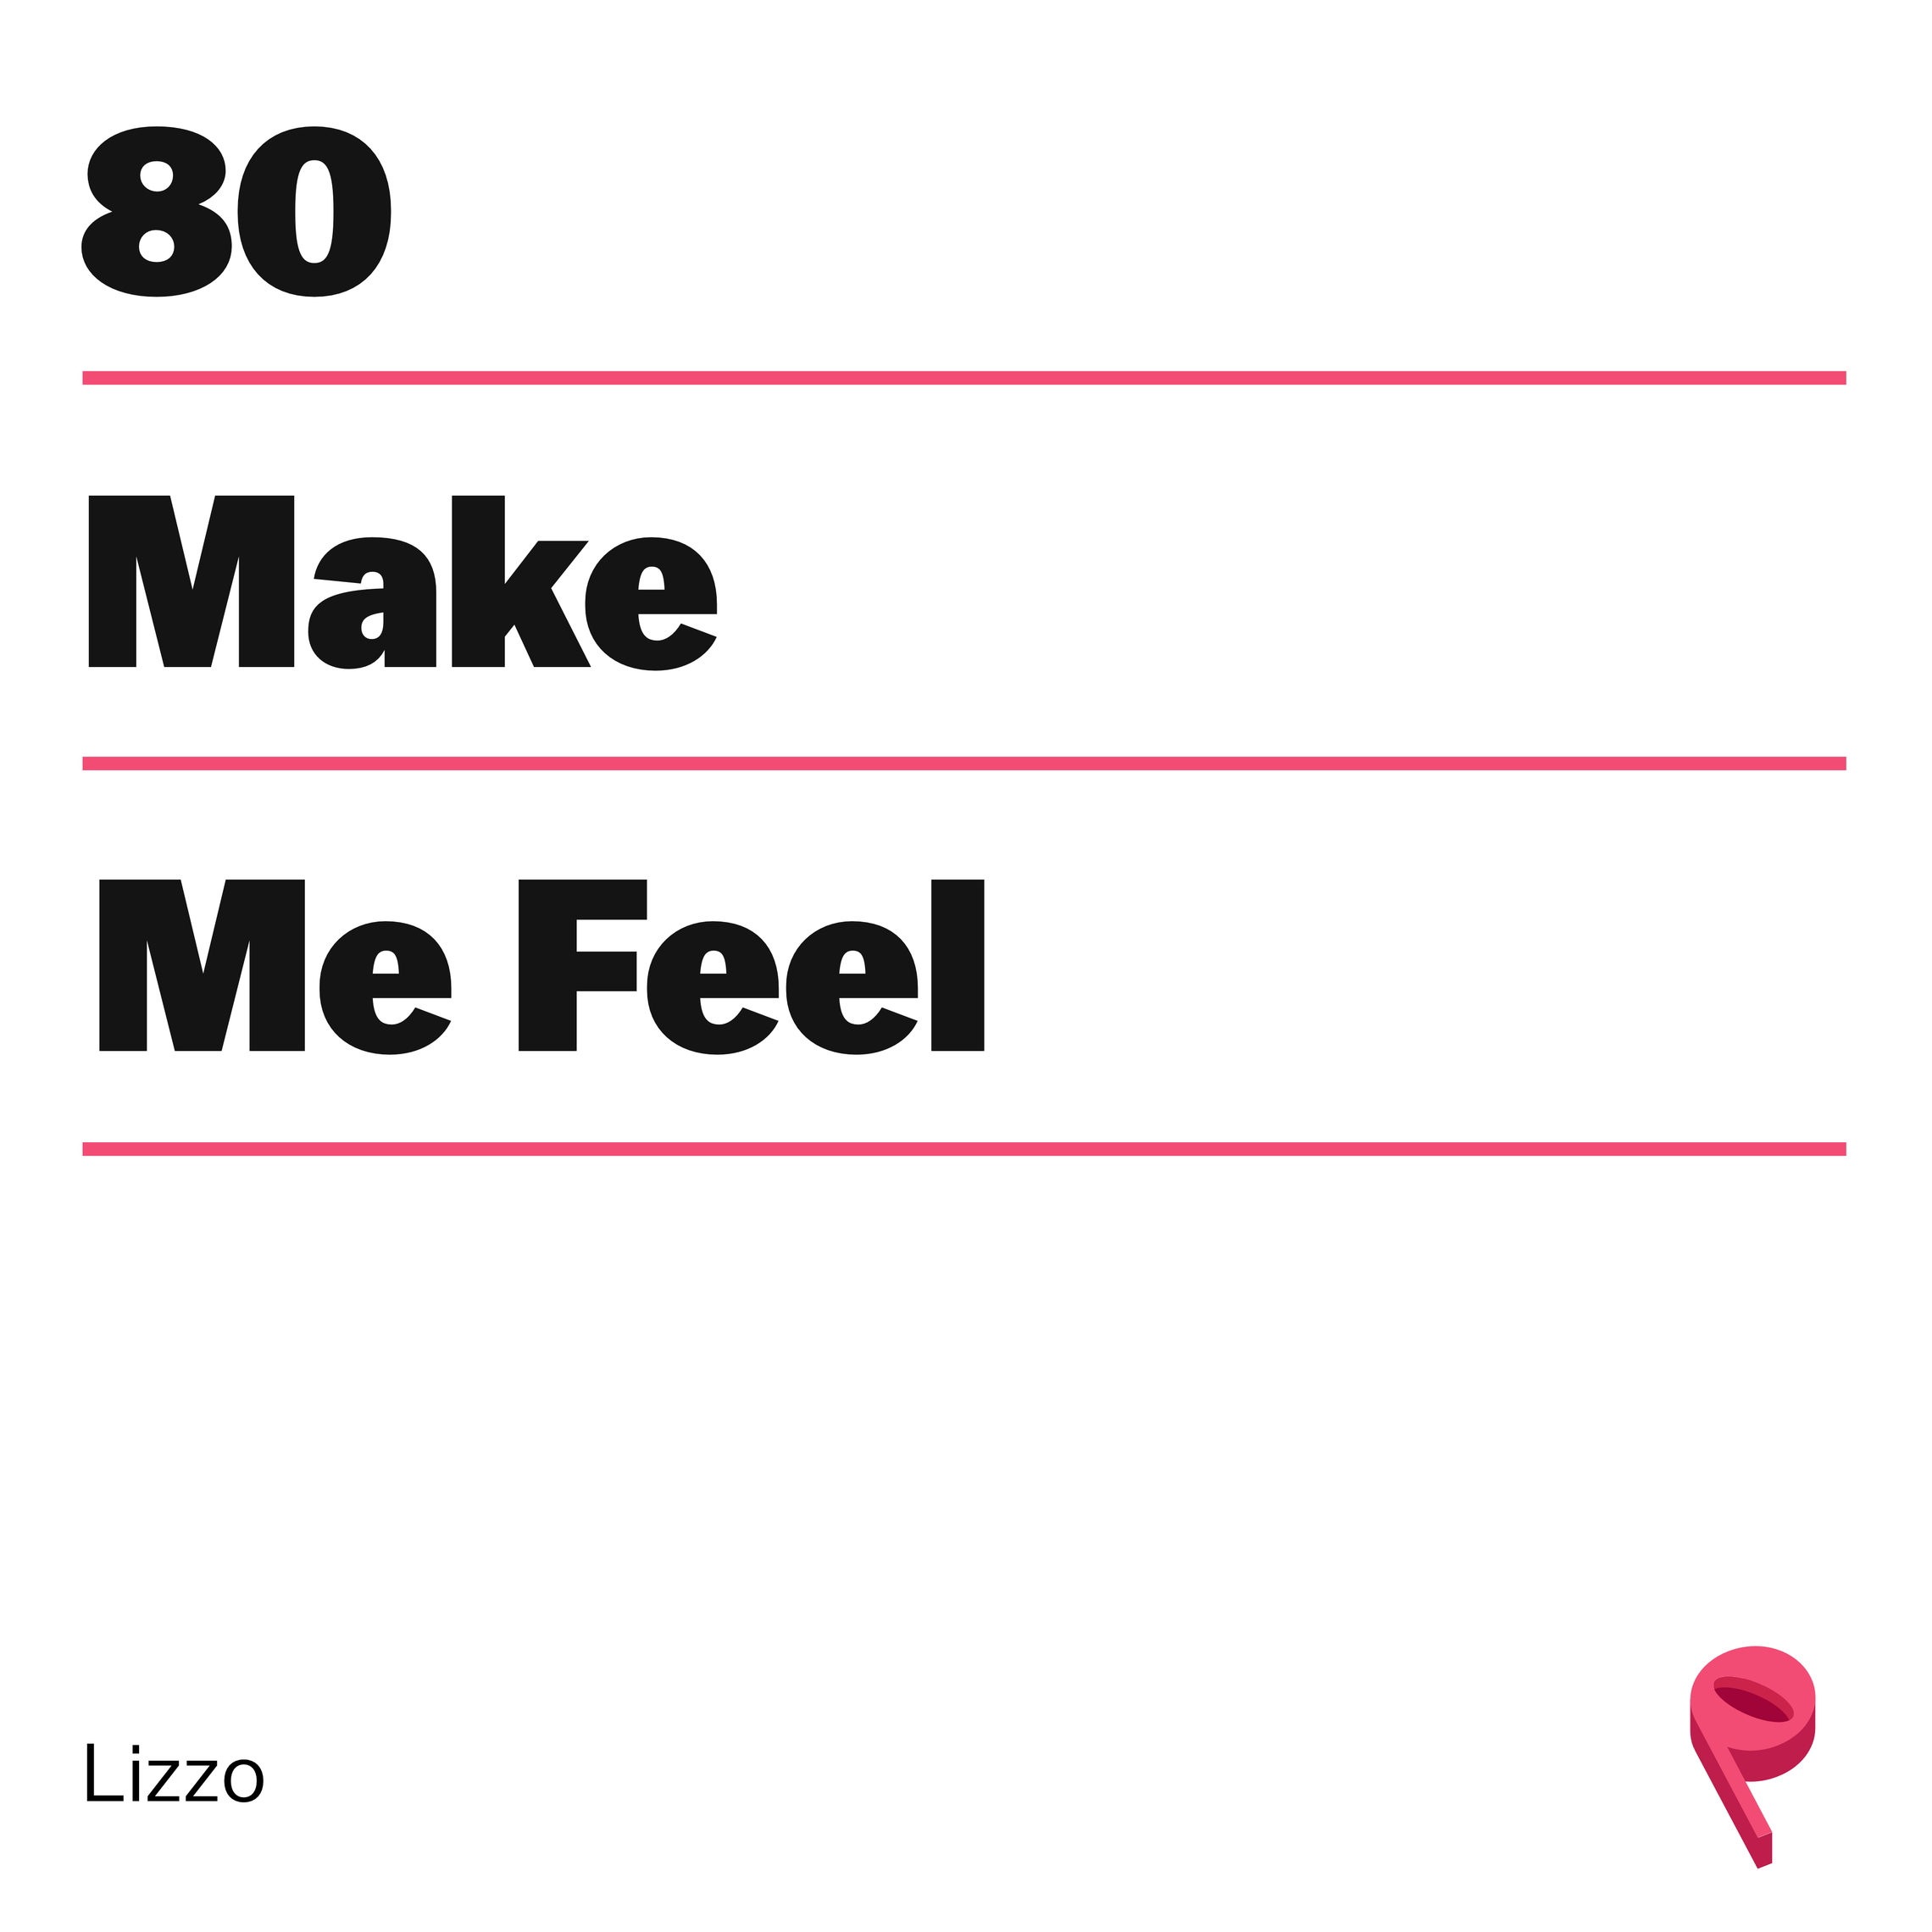 ICYMI: How to 'Make Me Feel' with Lizzo